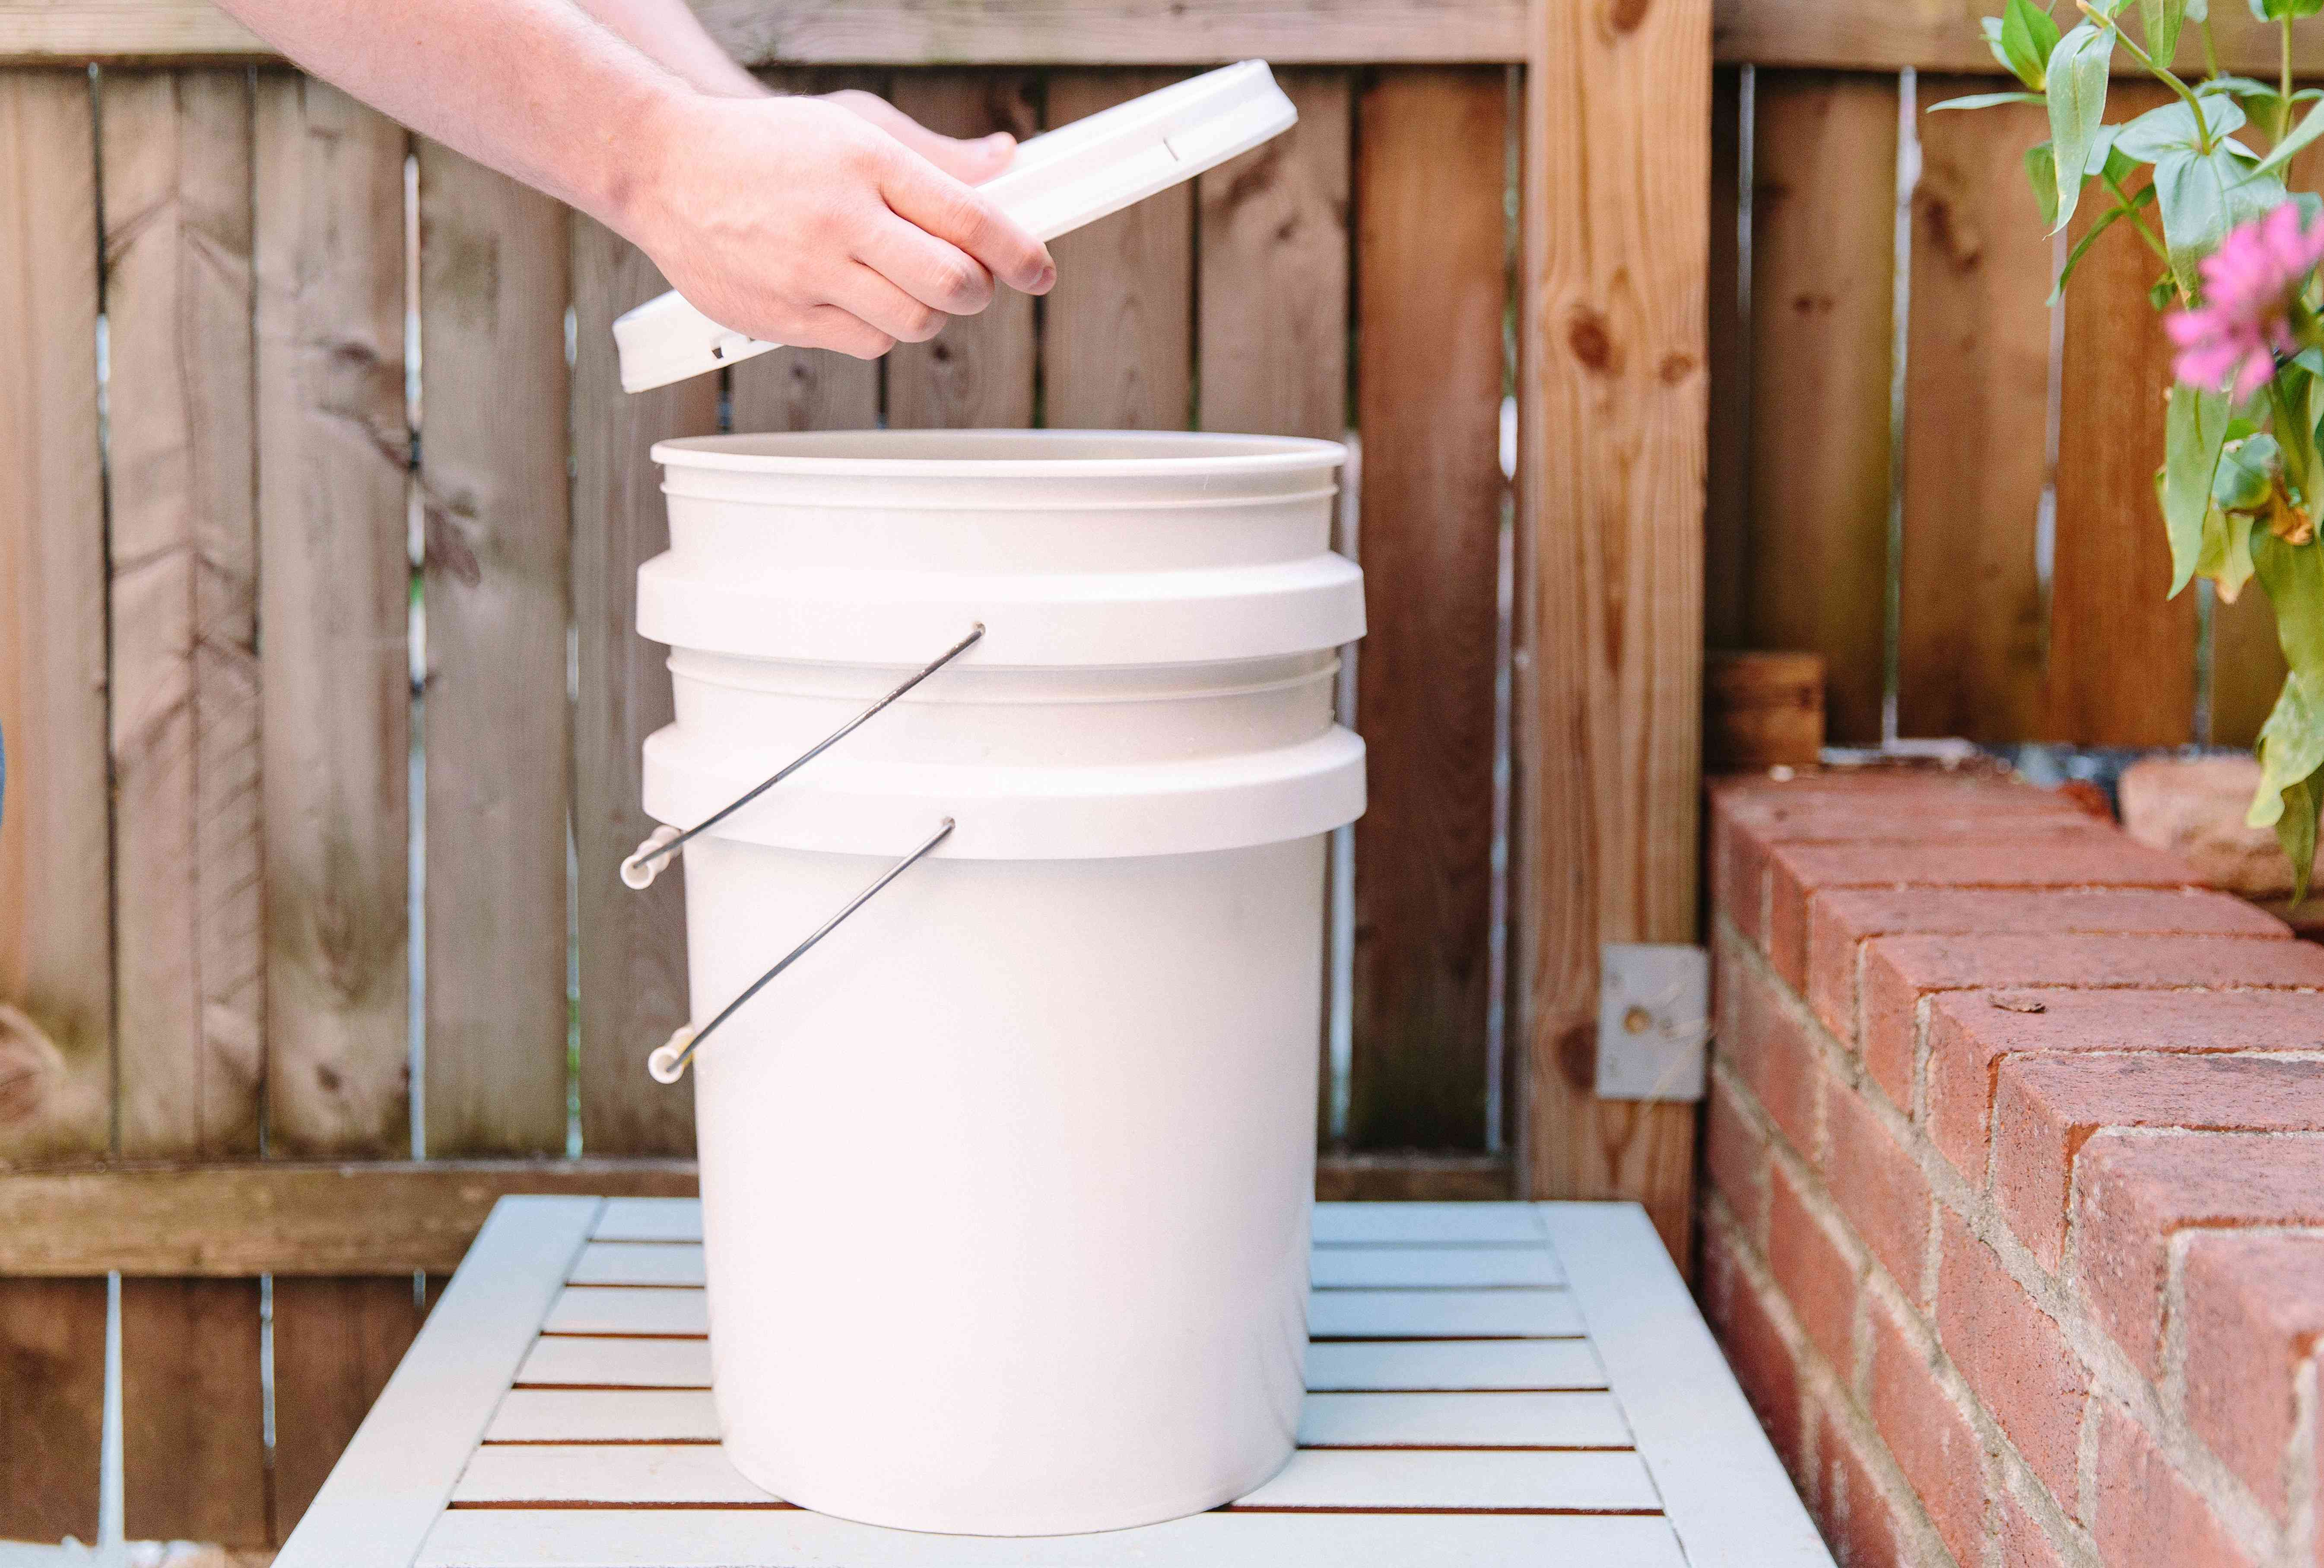 putting the lid with holes on the bucket